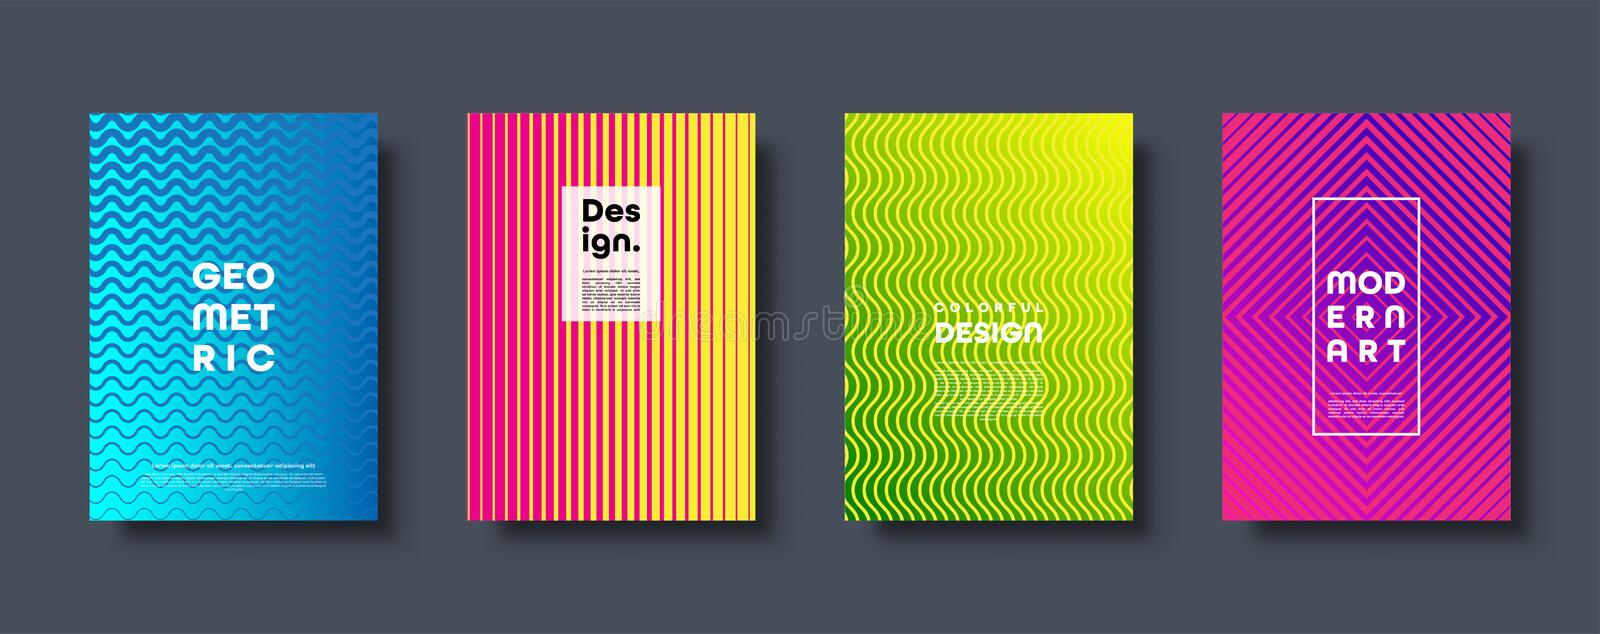 Modern abstract background with geometric shapes and lines. Colorful trendy minimal A4 template cover with acid colors vector illustration